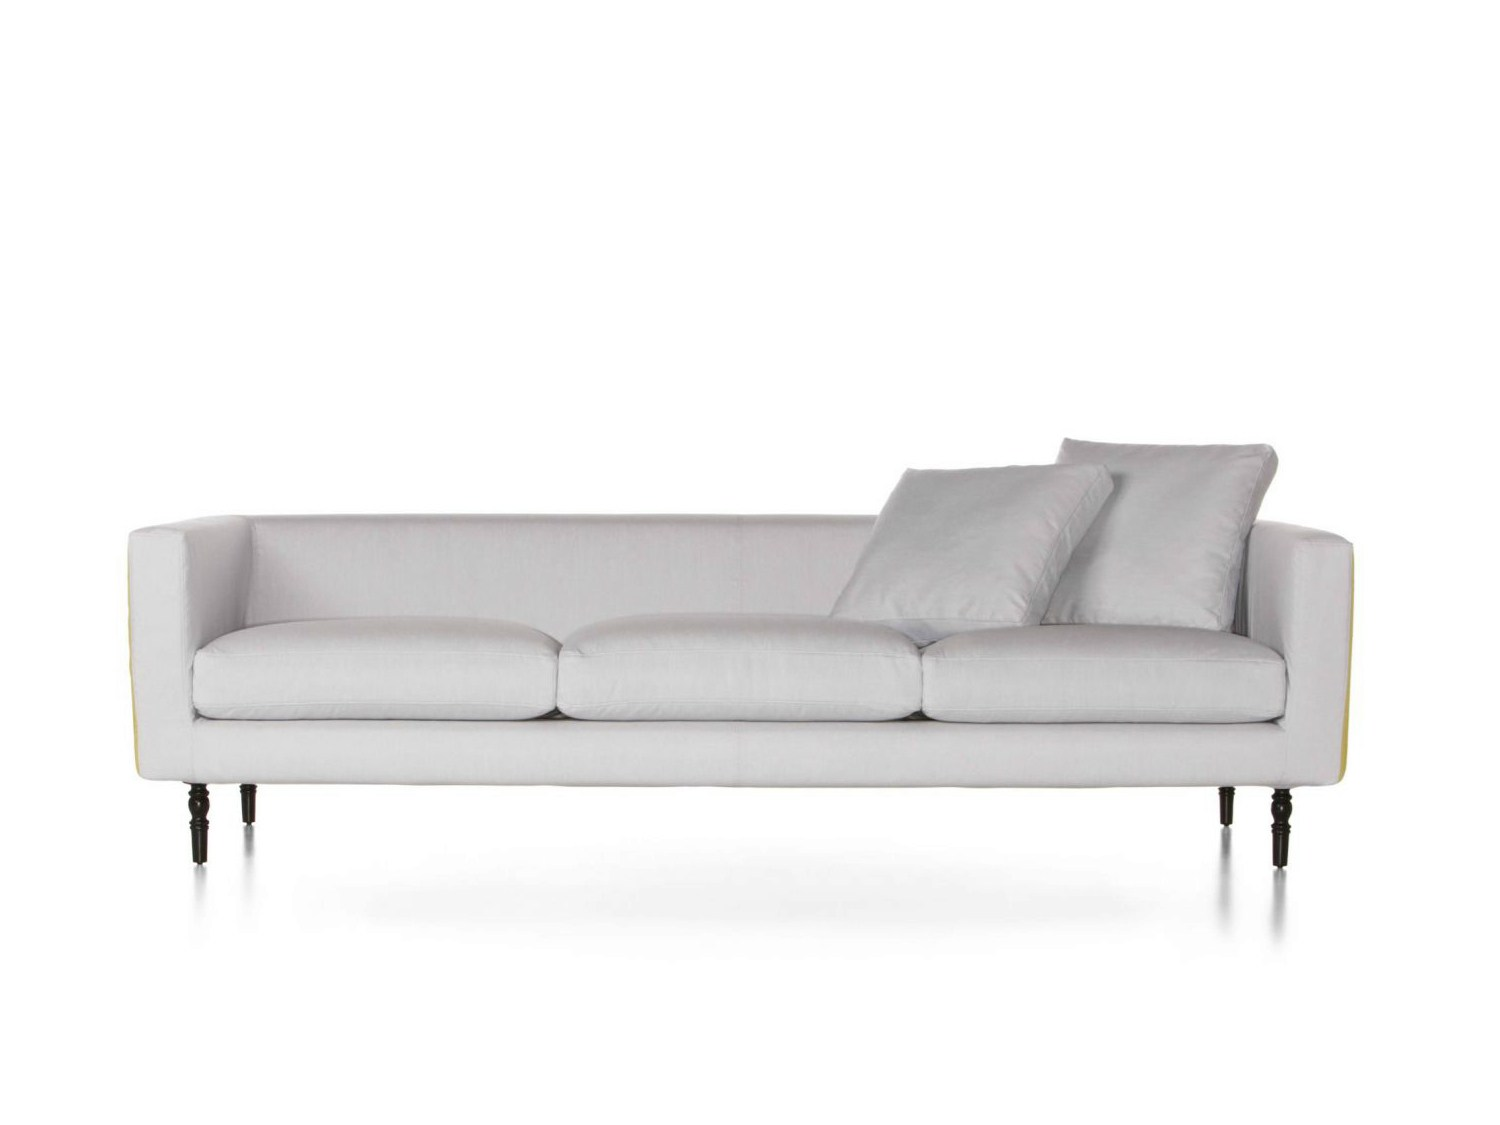 foam sofa design crate and barrel couch bed upholstered boutique kimono collection